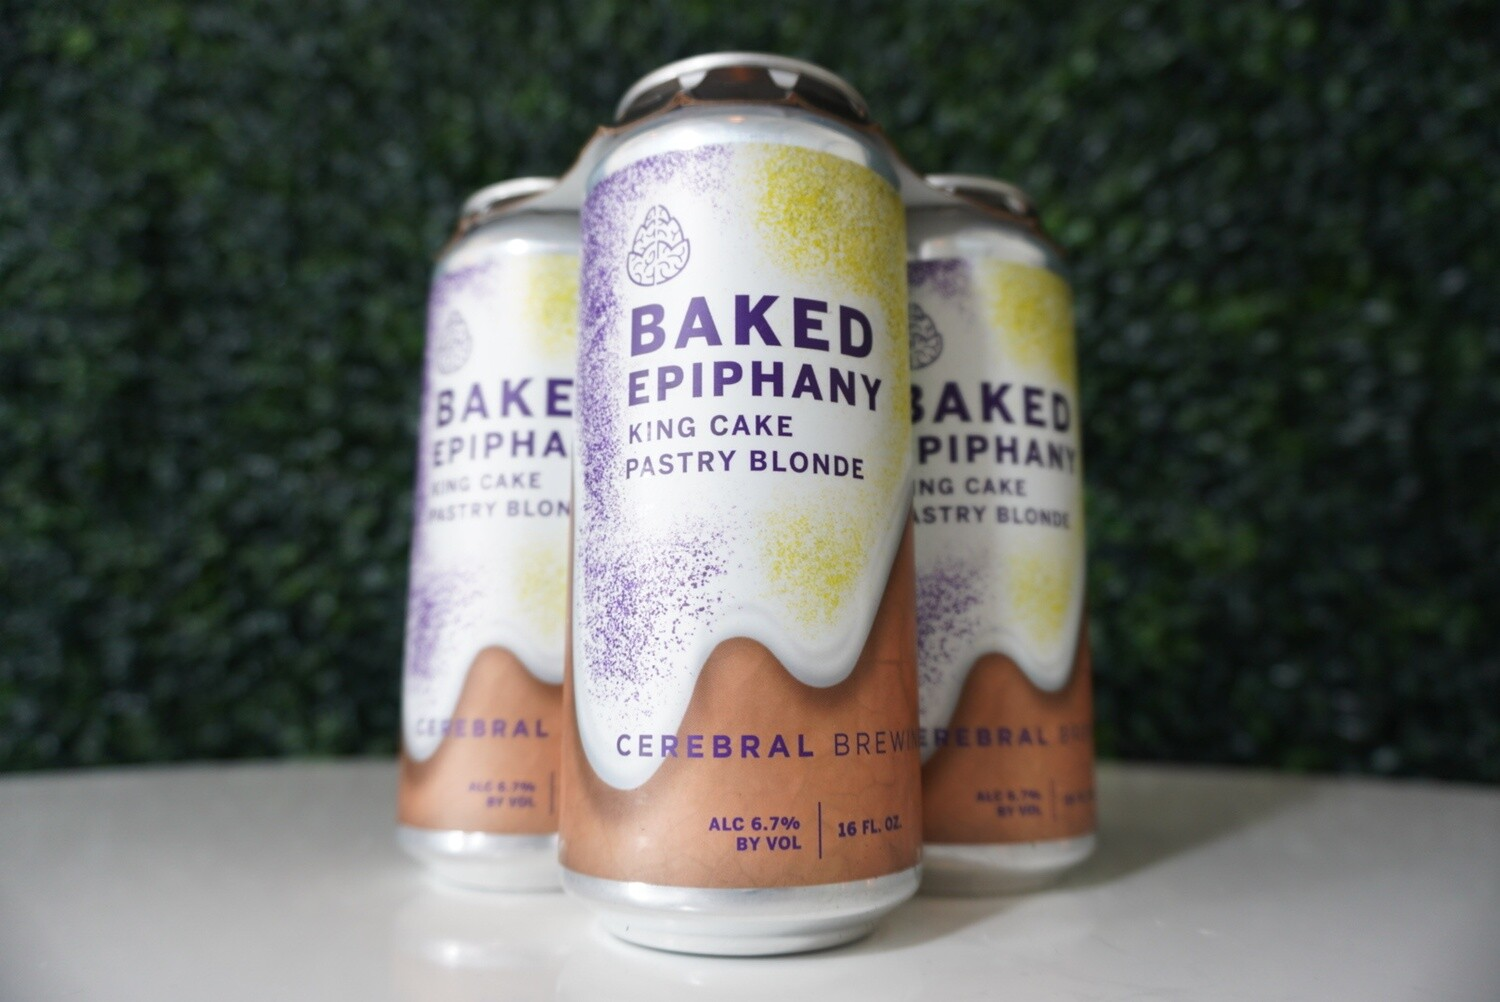 Cerebral - Baked Epiphany King - Pastry Blonde Ale - 7.8% ABV - 16oz Can